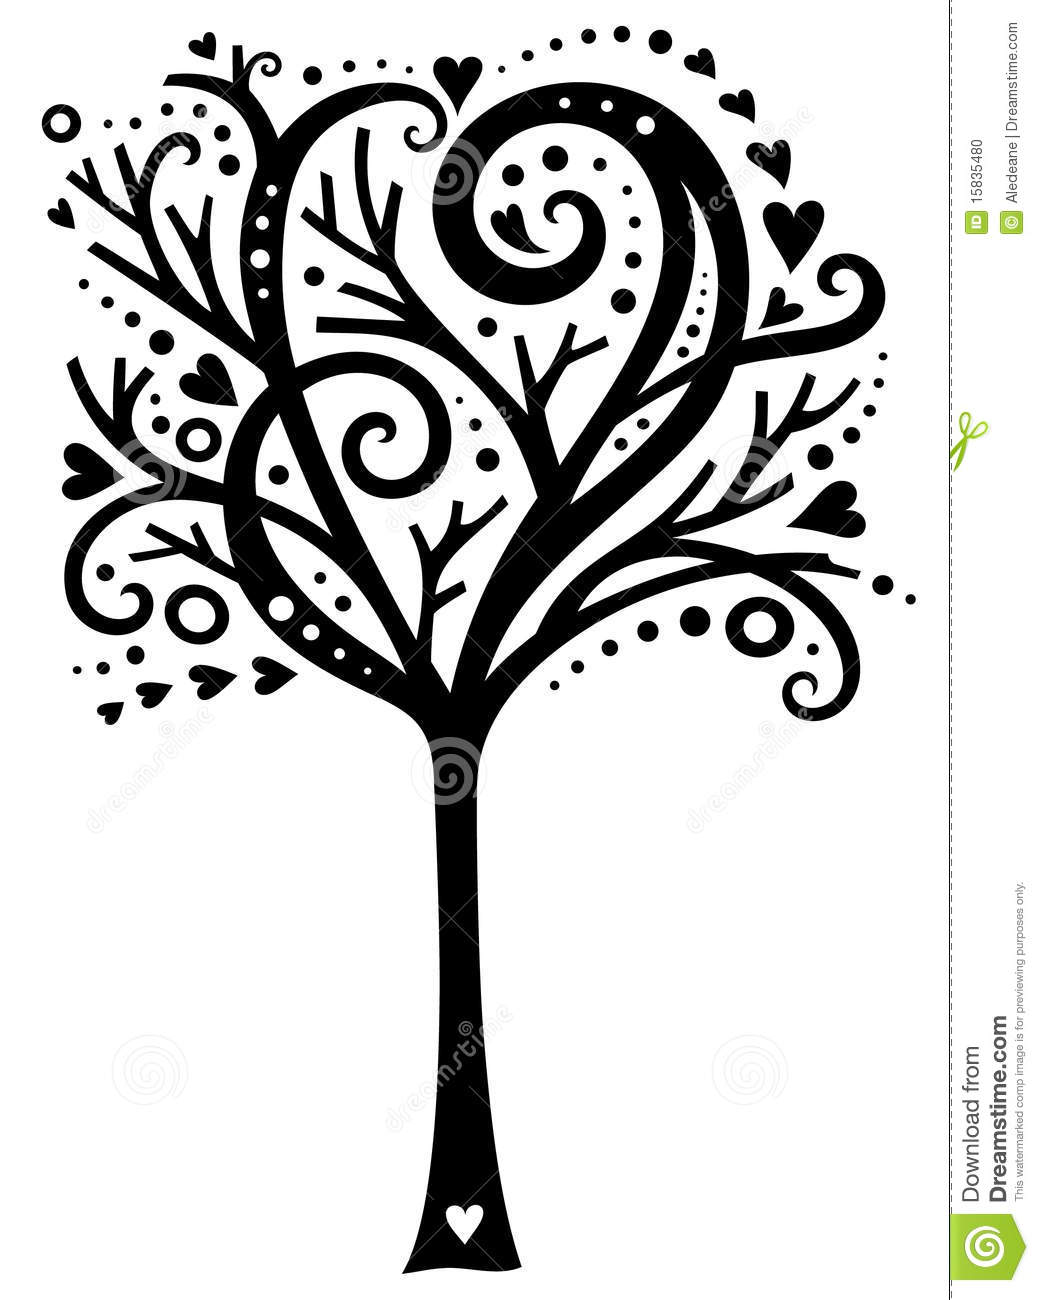 Whimsical Tree Of Love Stock Vector Illustration Of Swirly 15835480